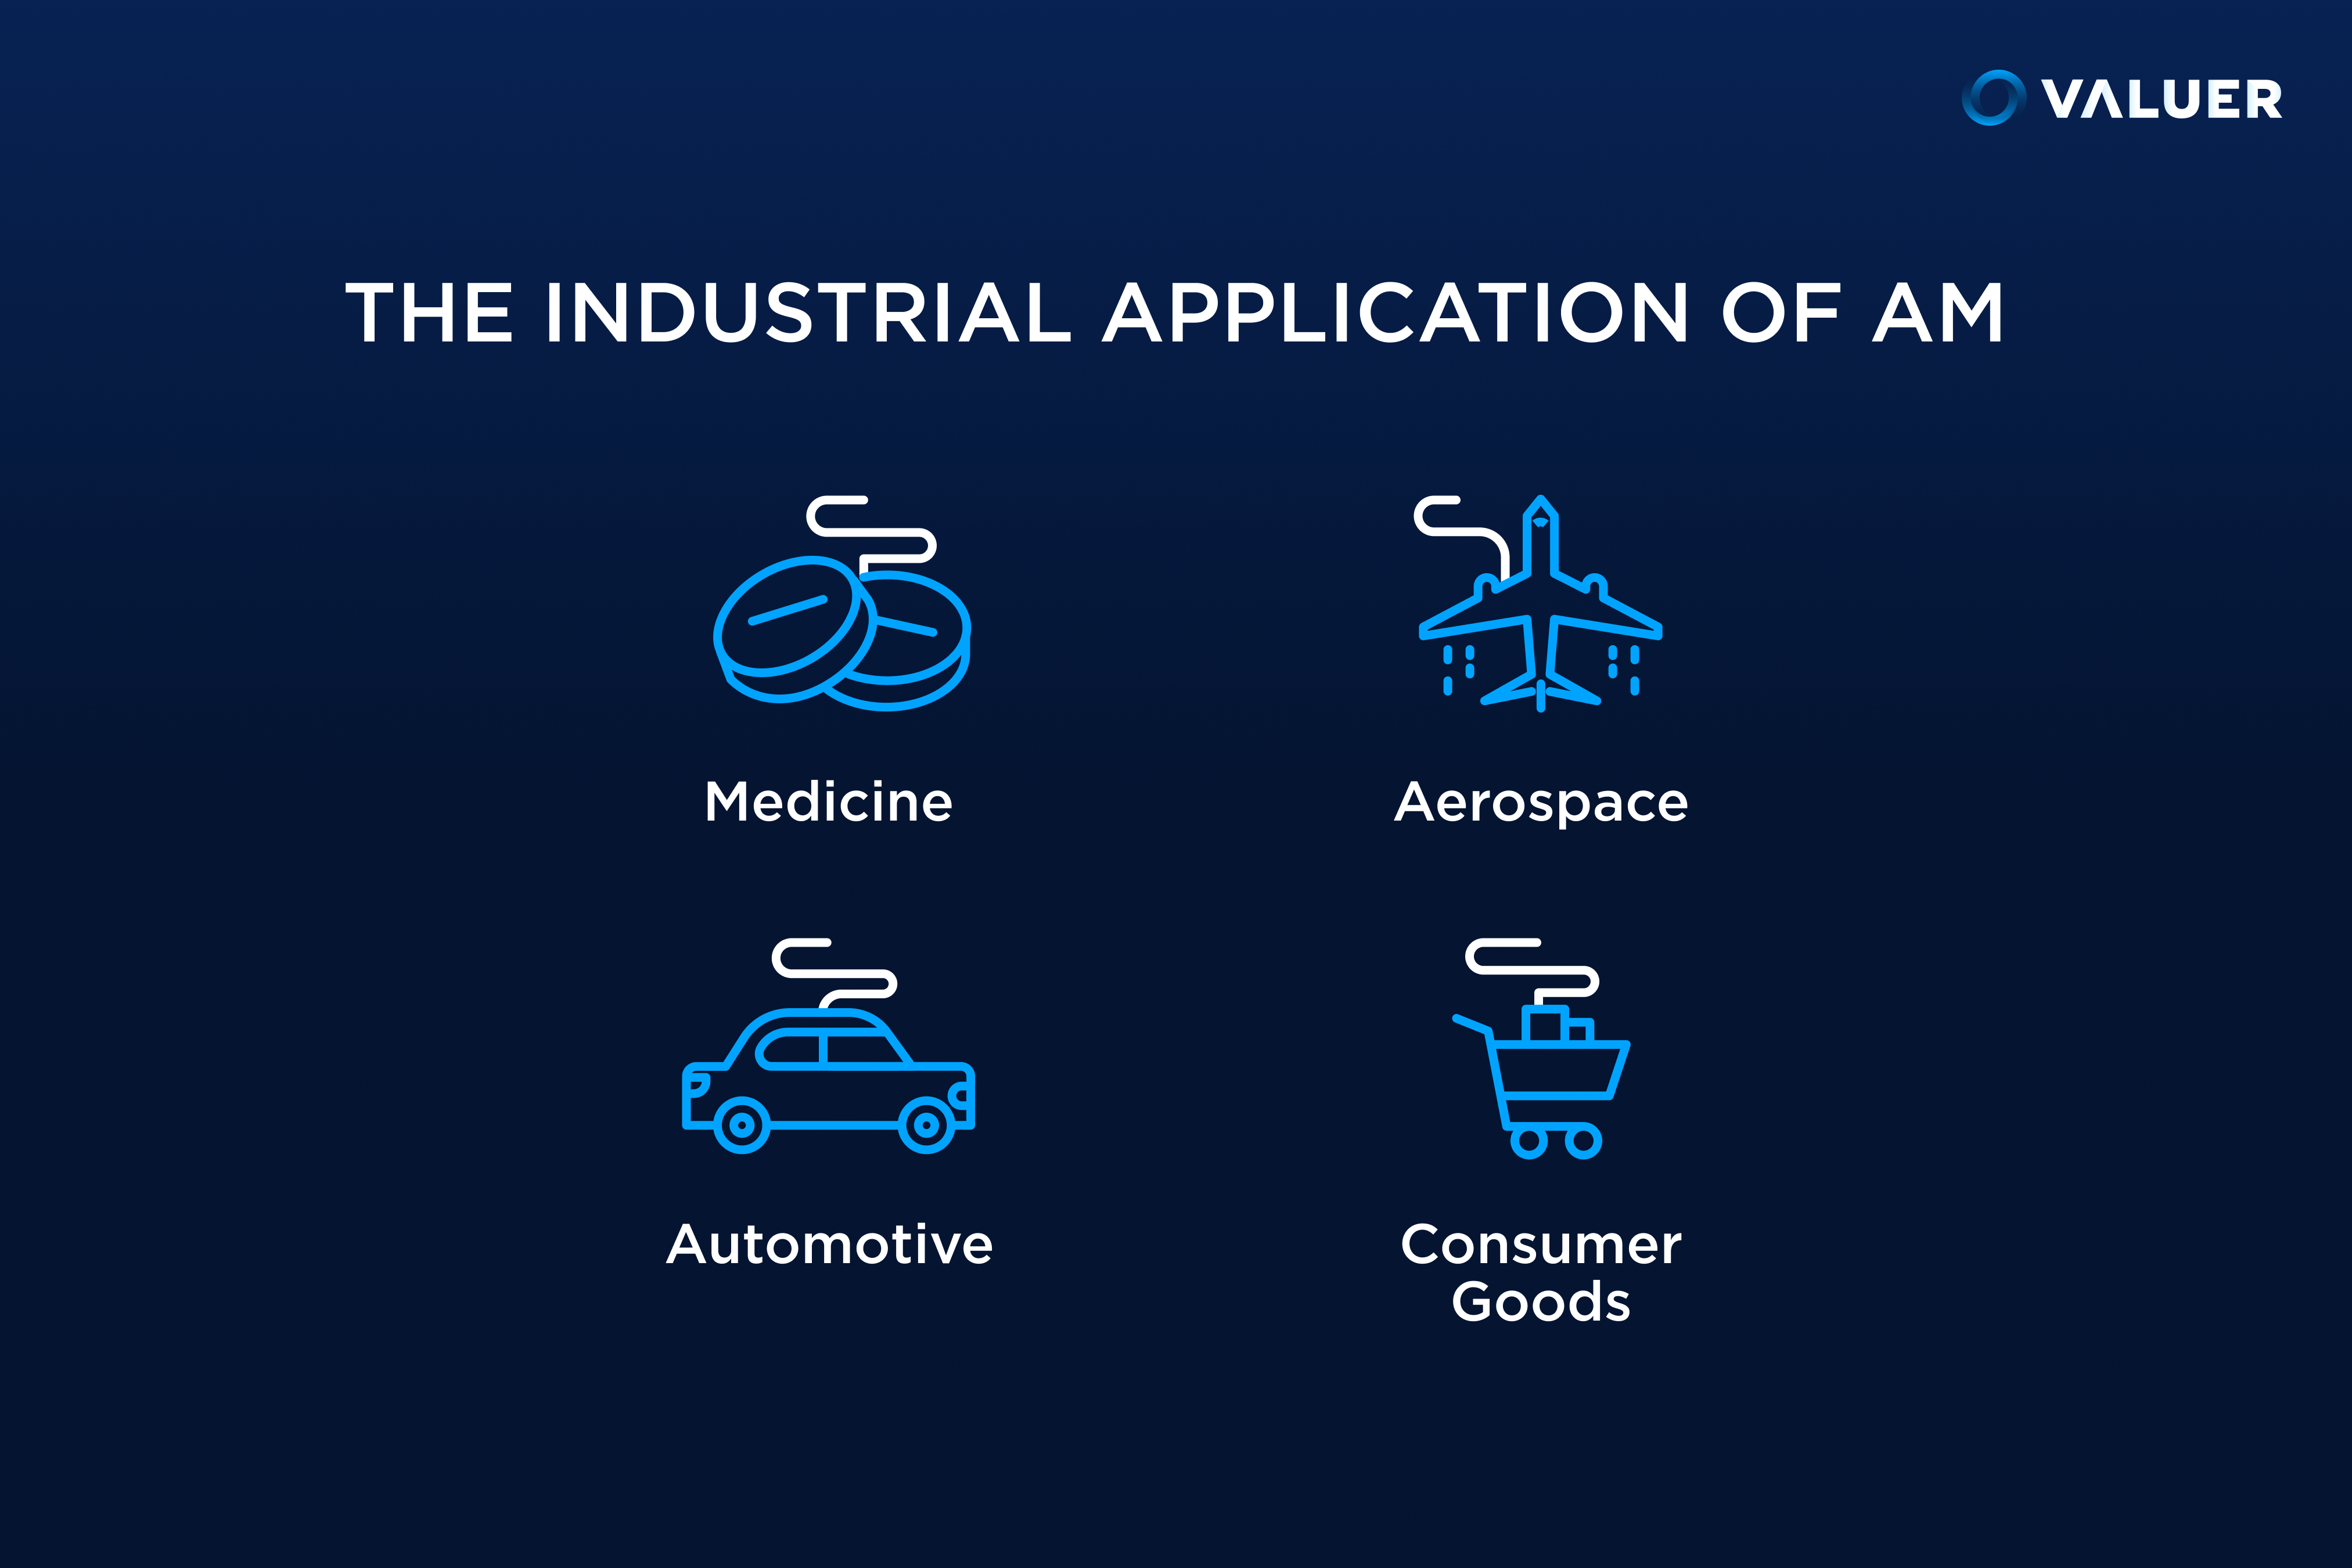 the industrial applications of AM